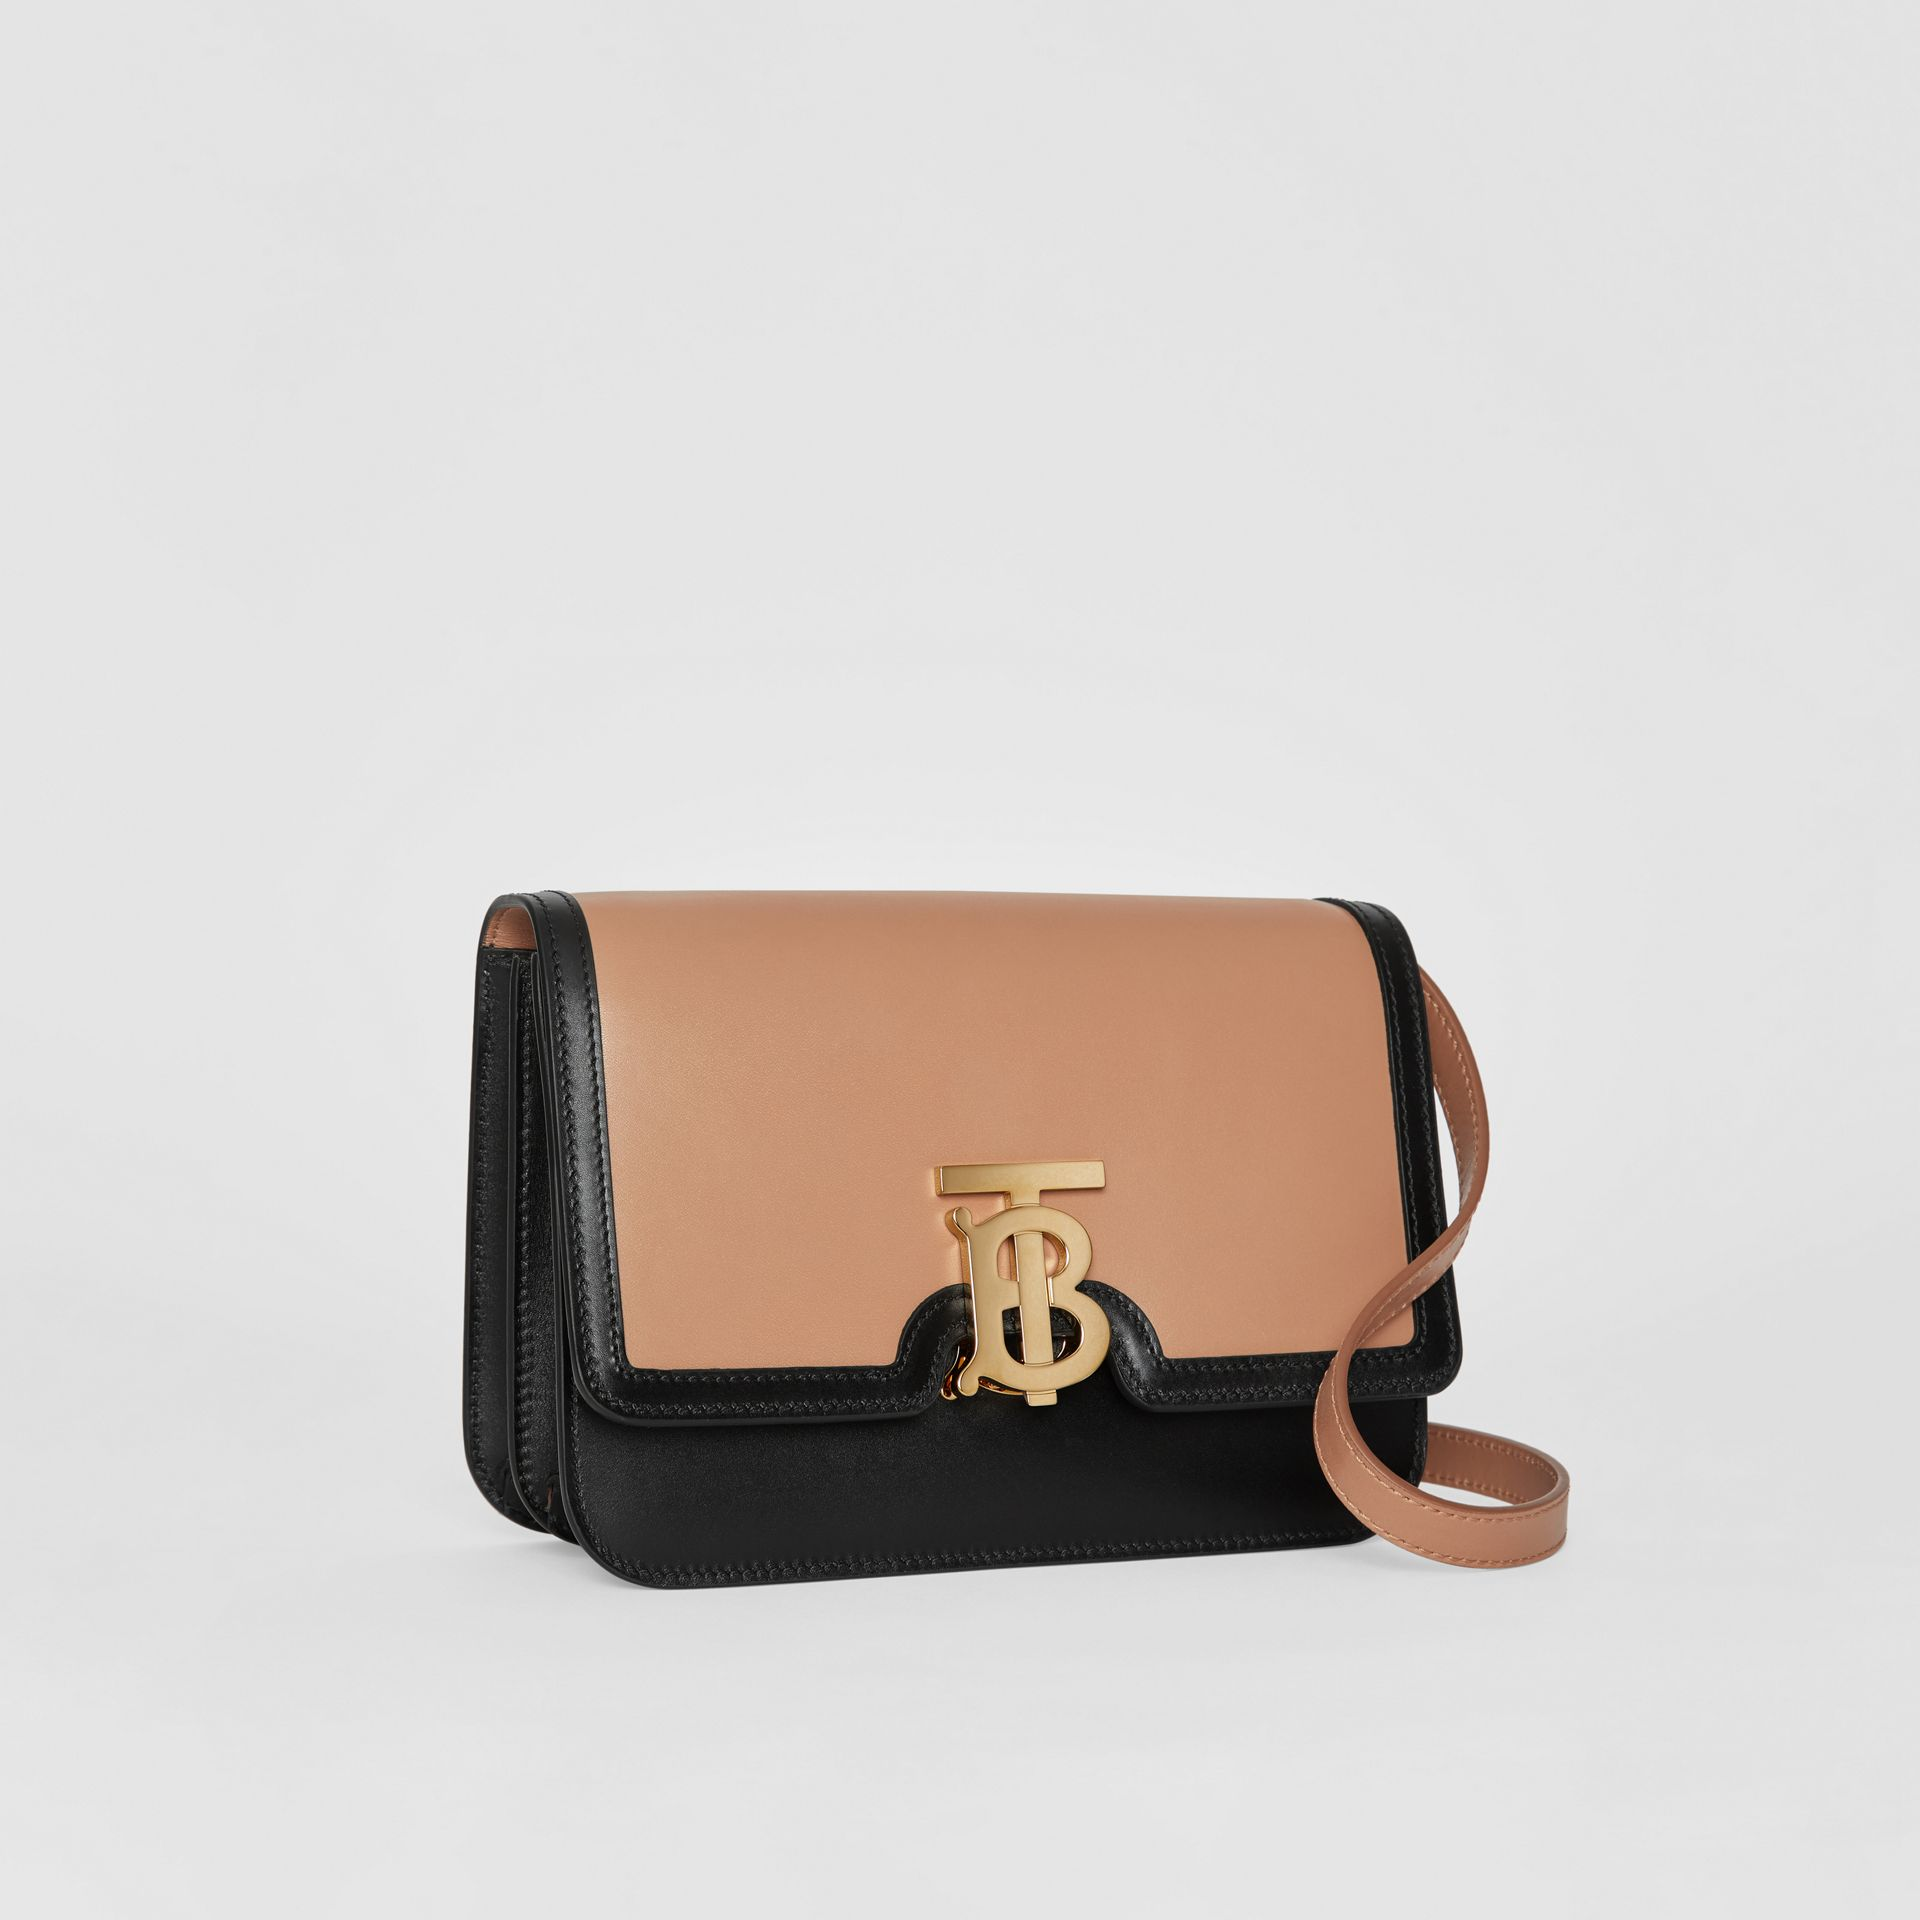 Small Leather TB Bag in Light Camel/black - Women | Burberry United States - gallery image 6